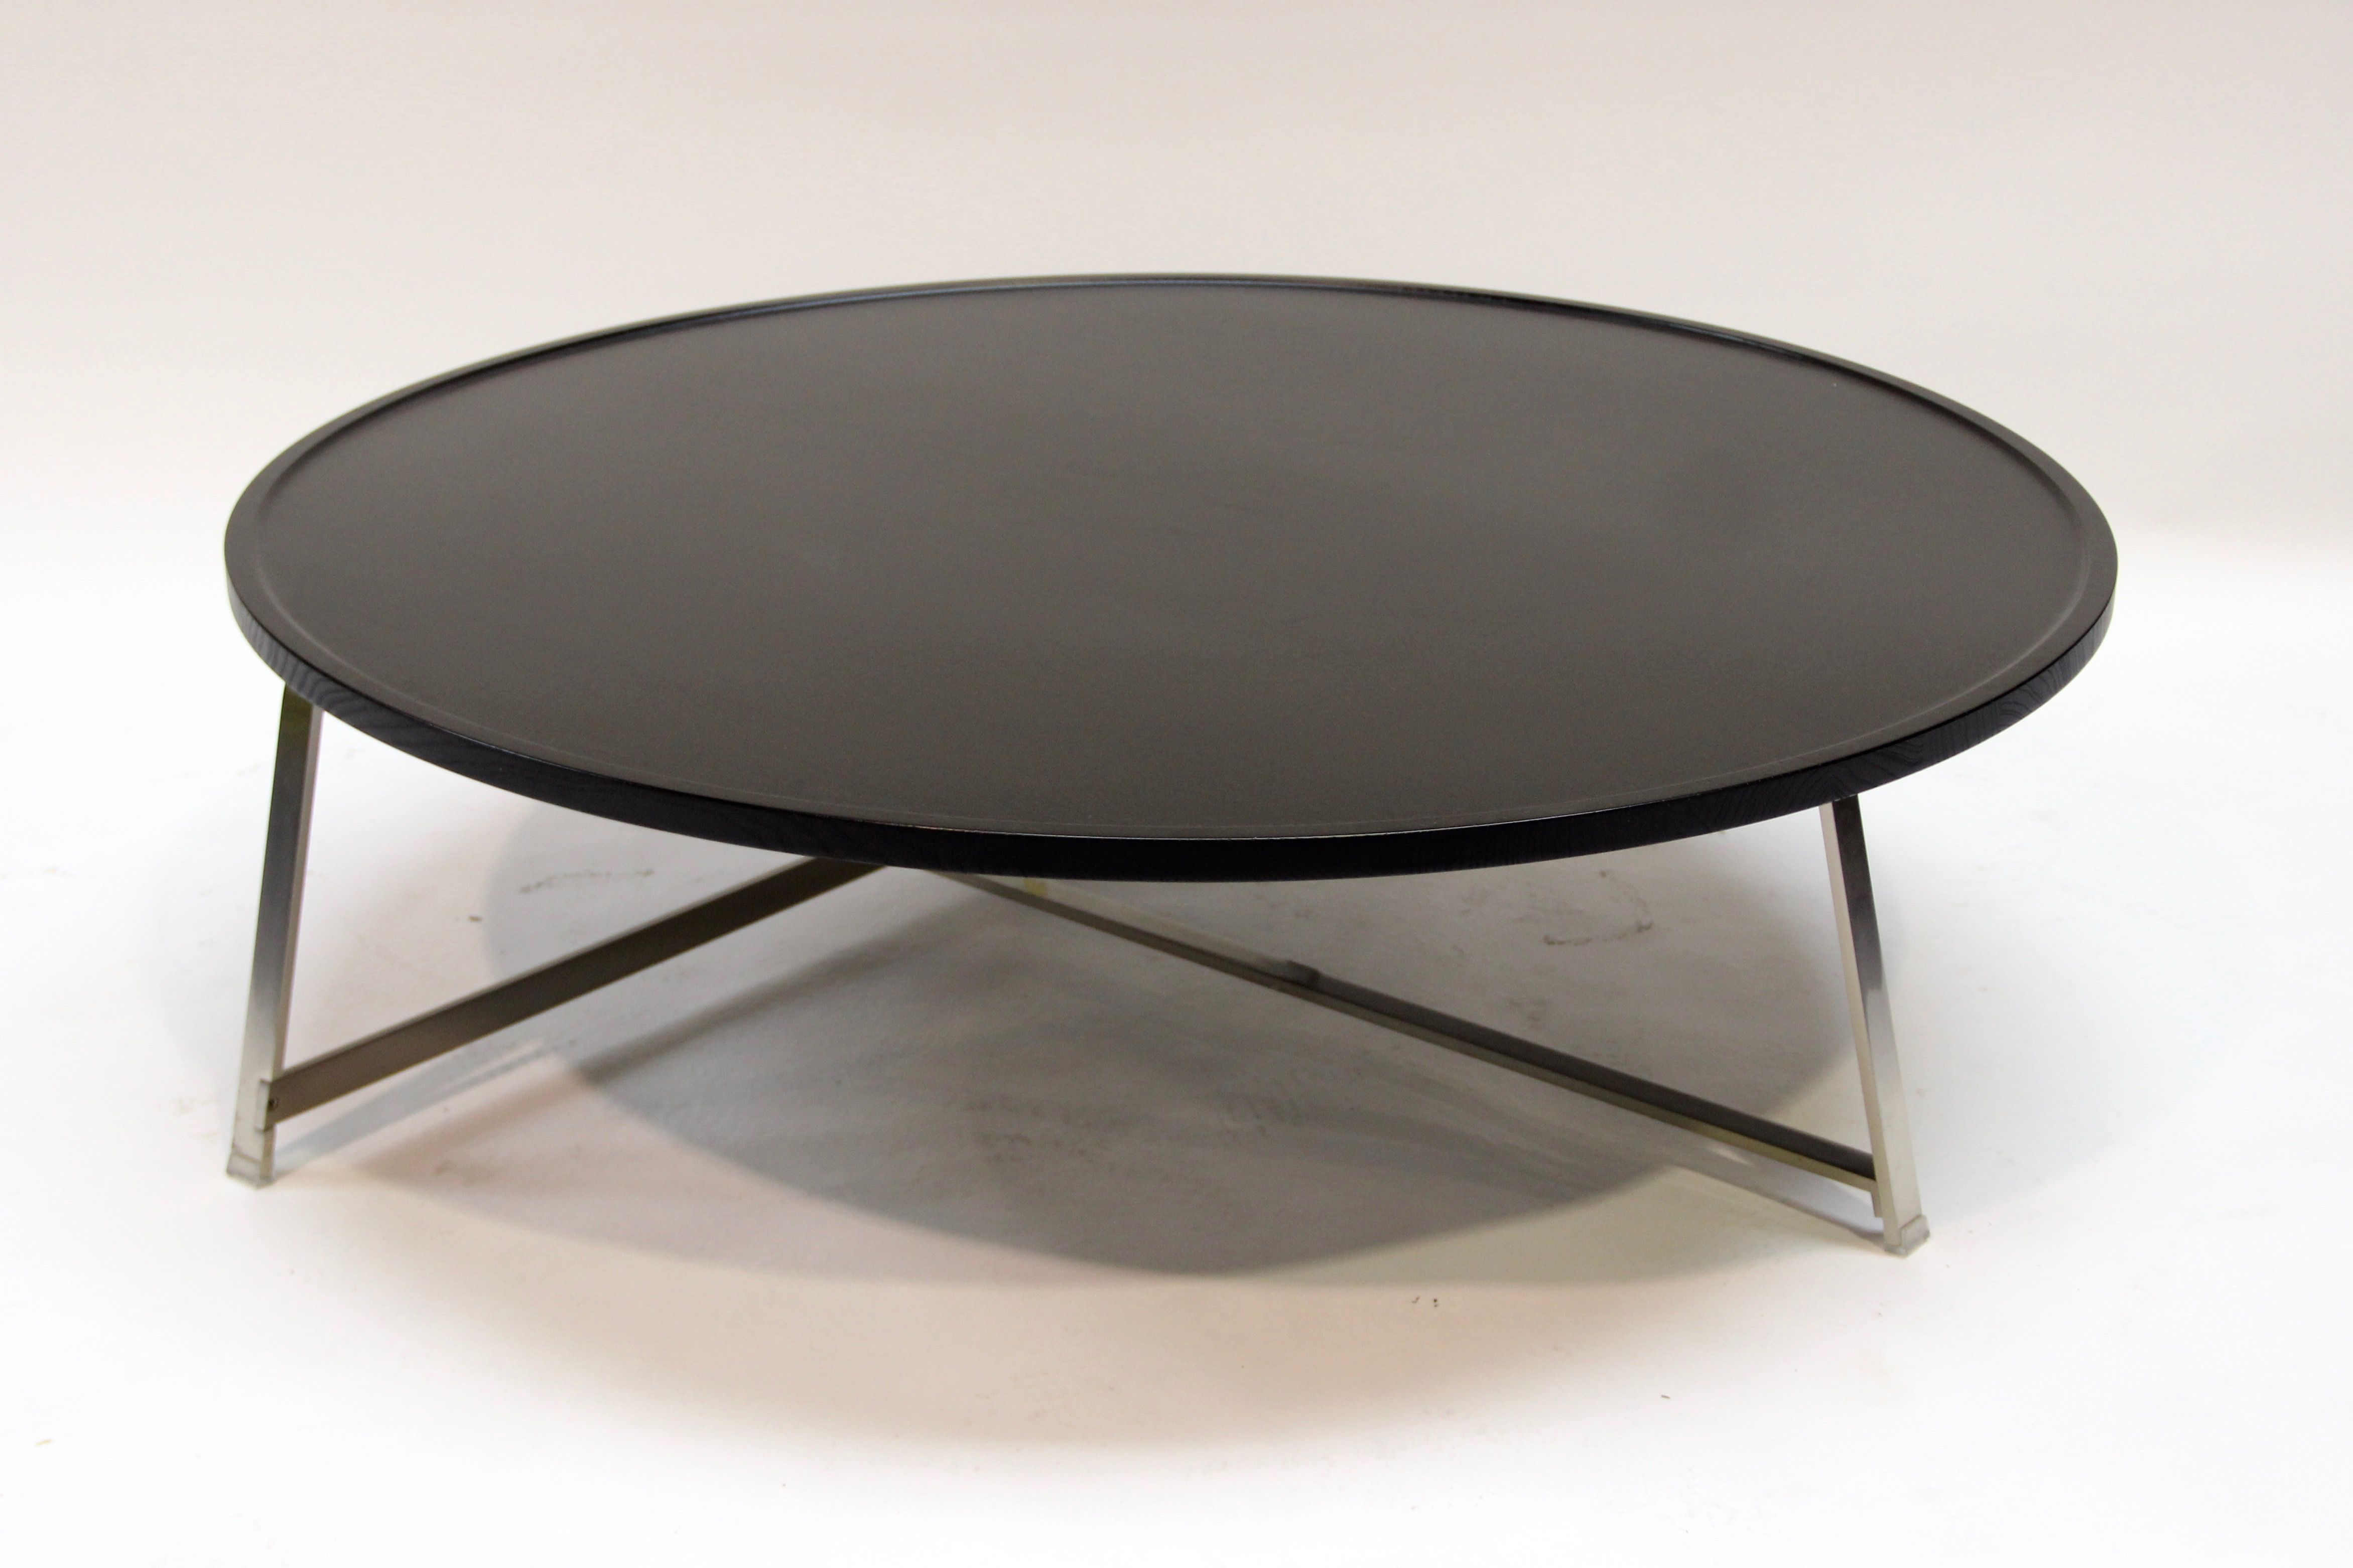 grande table basse ronde alex par flexform - Grande Table Basse Ronde